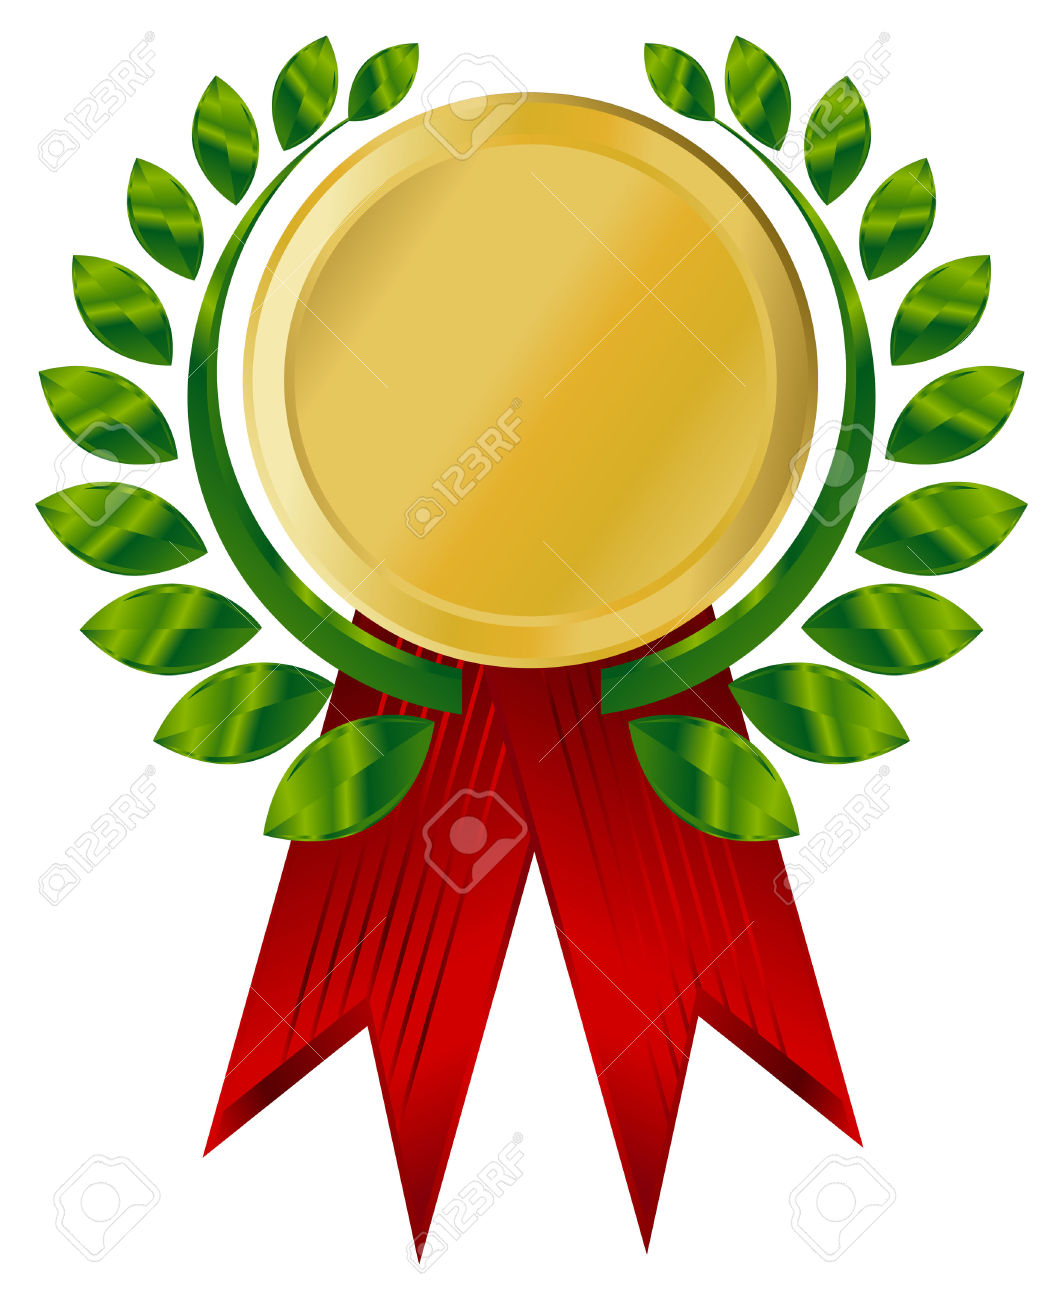 Recognition clipart 5 » Clipart Station.